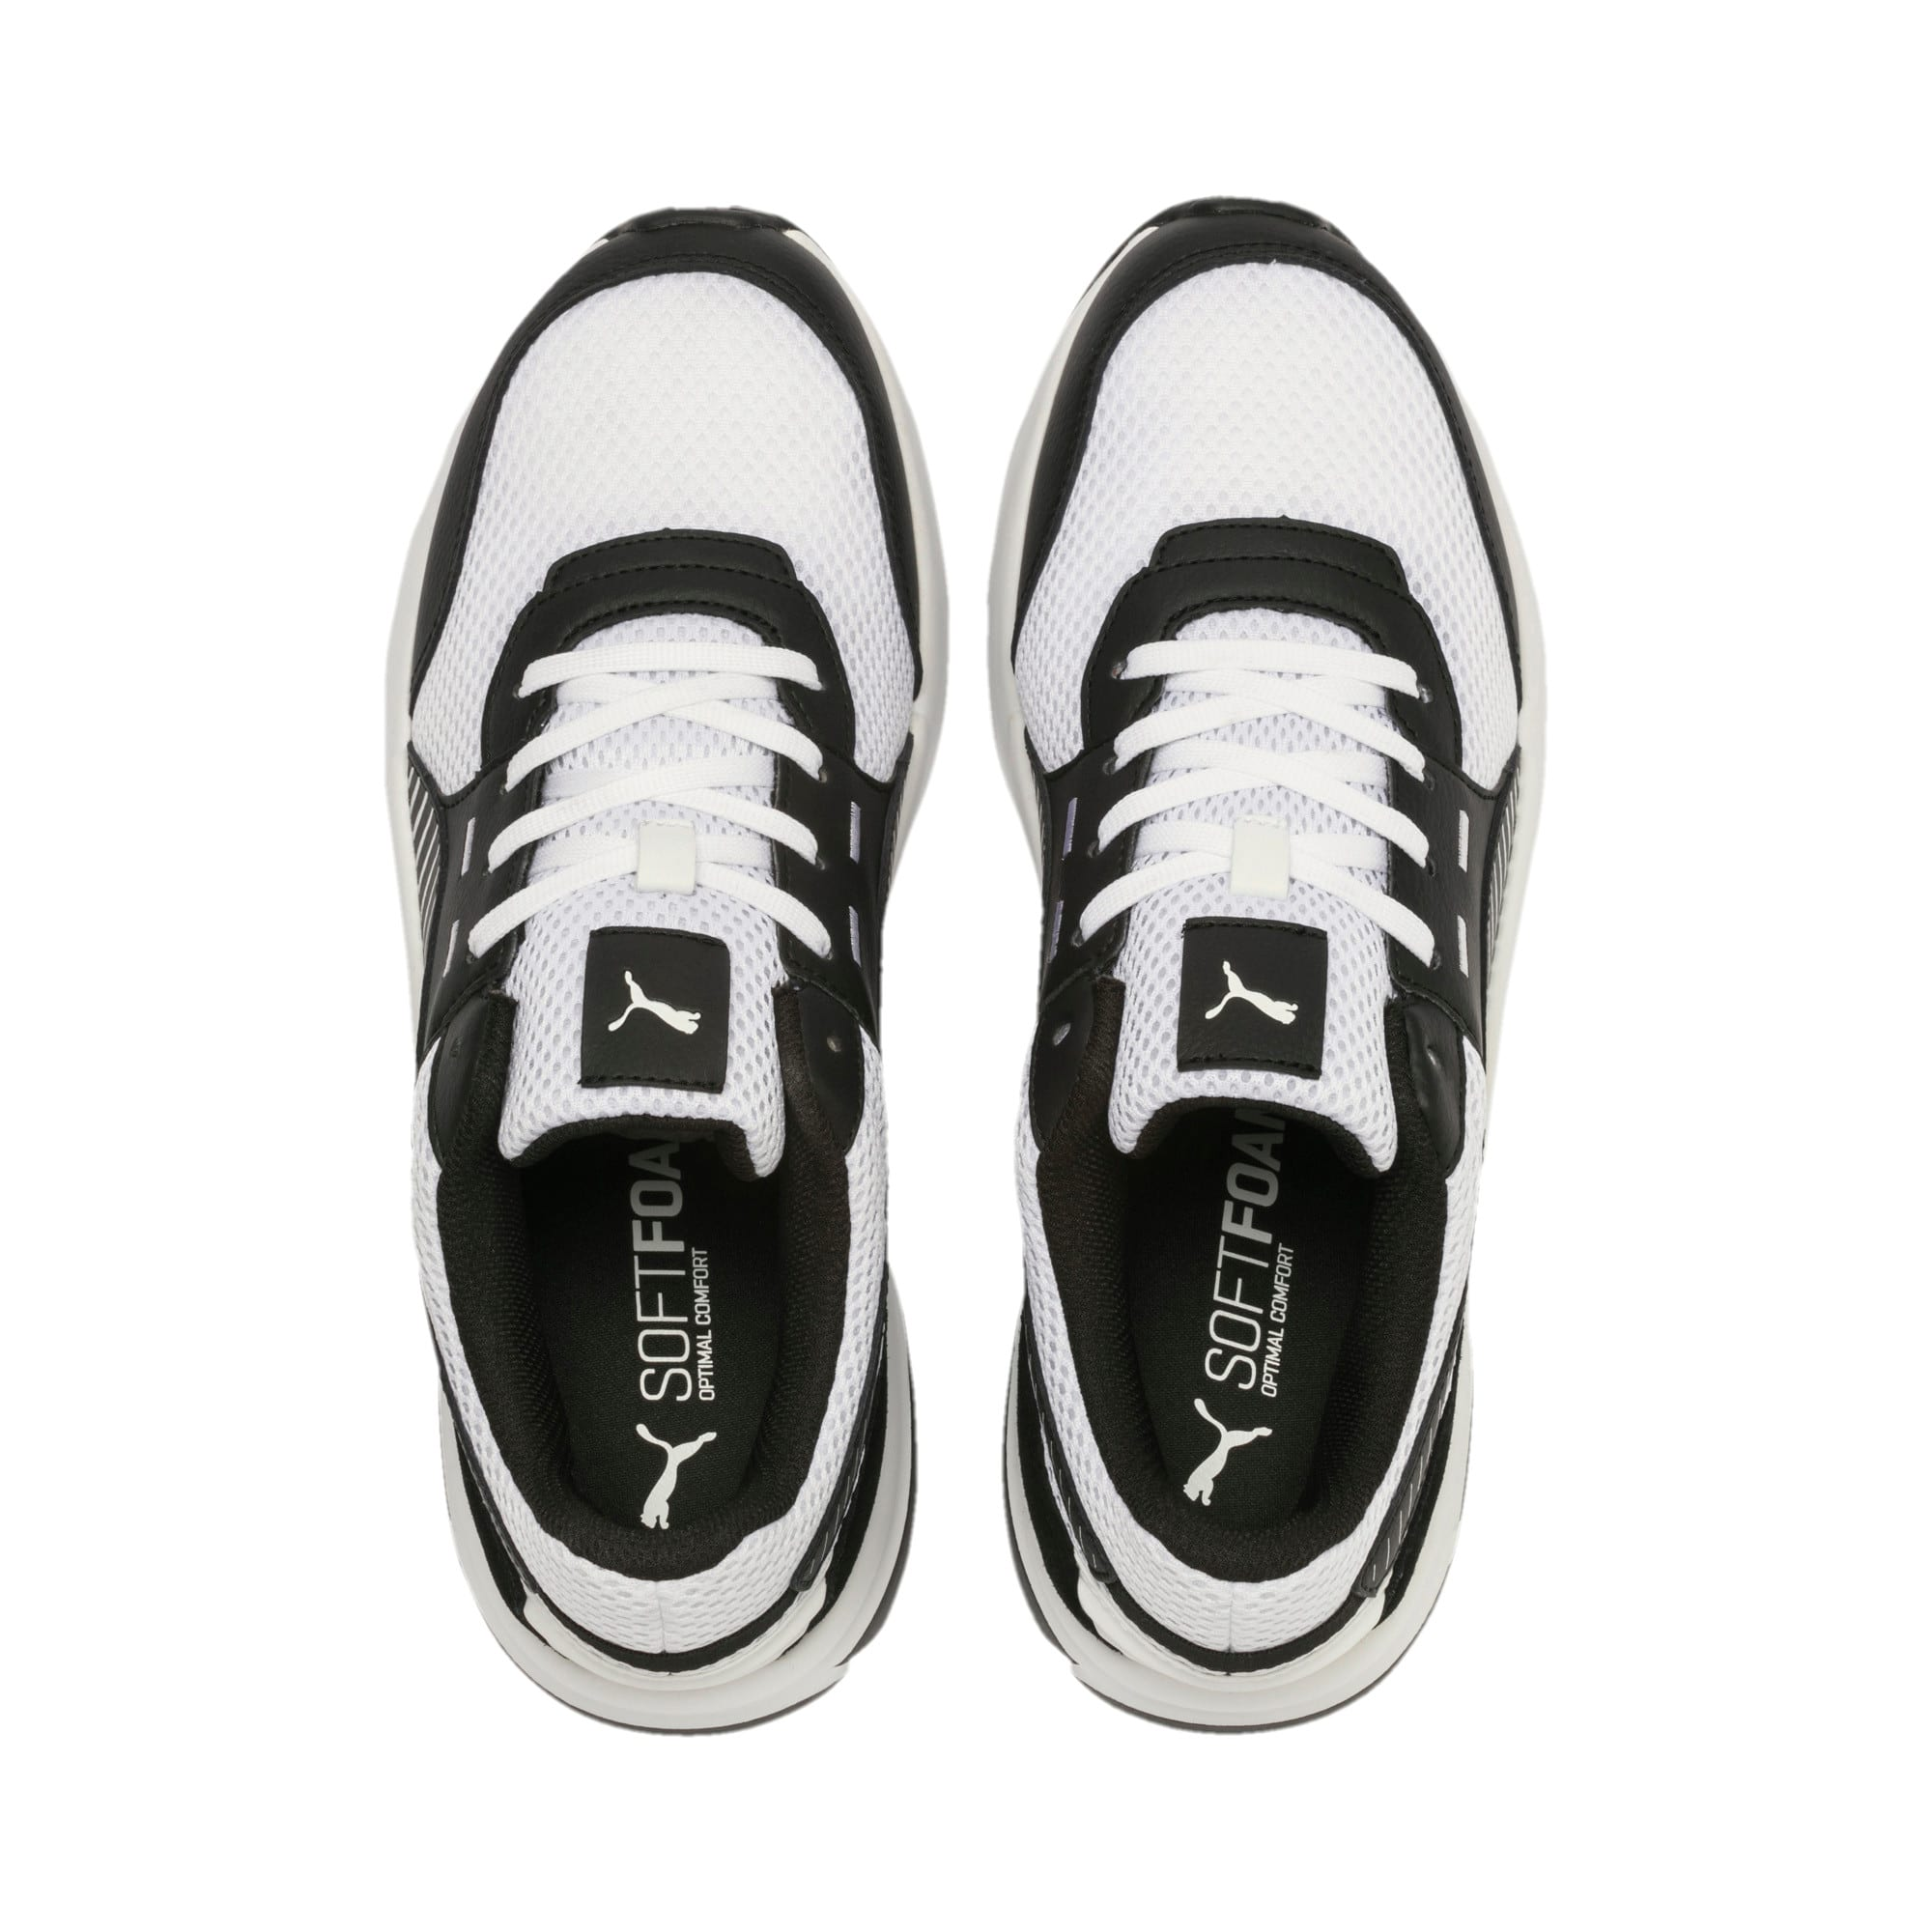 Thumbnail 7 of Future Runner Premium Laufschuhe, Puma White-Puma Black, medium